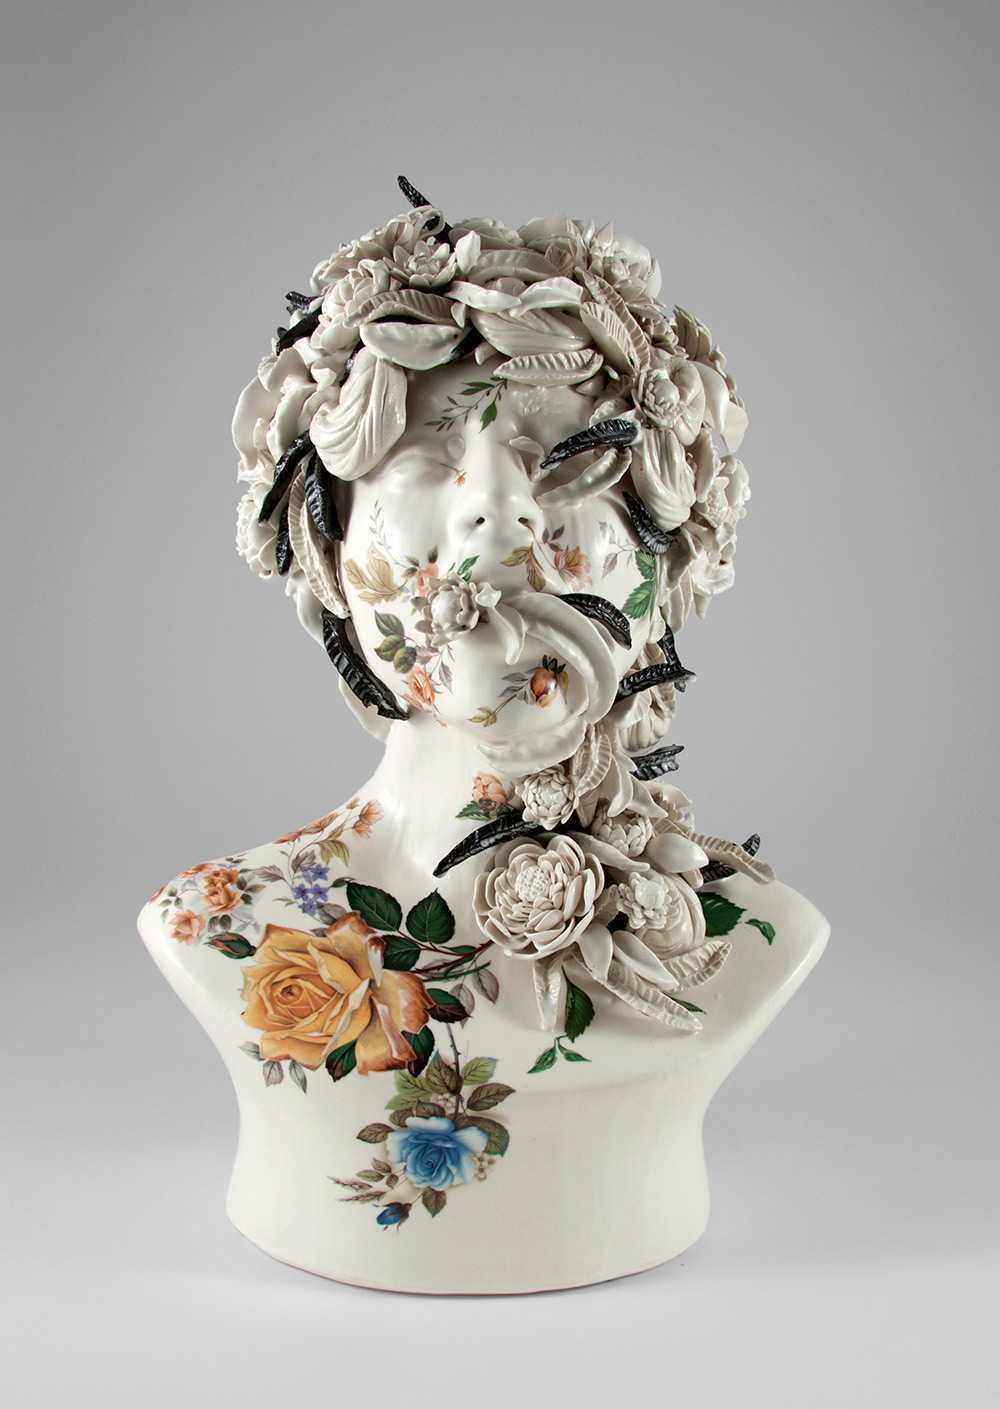 Ceramic Busts Overgrown With Twisted Vines and Colorful